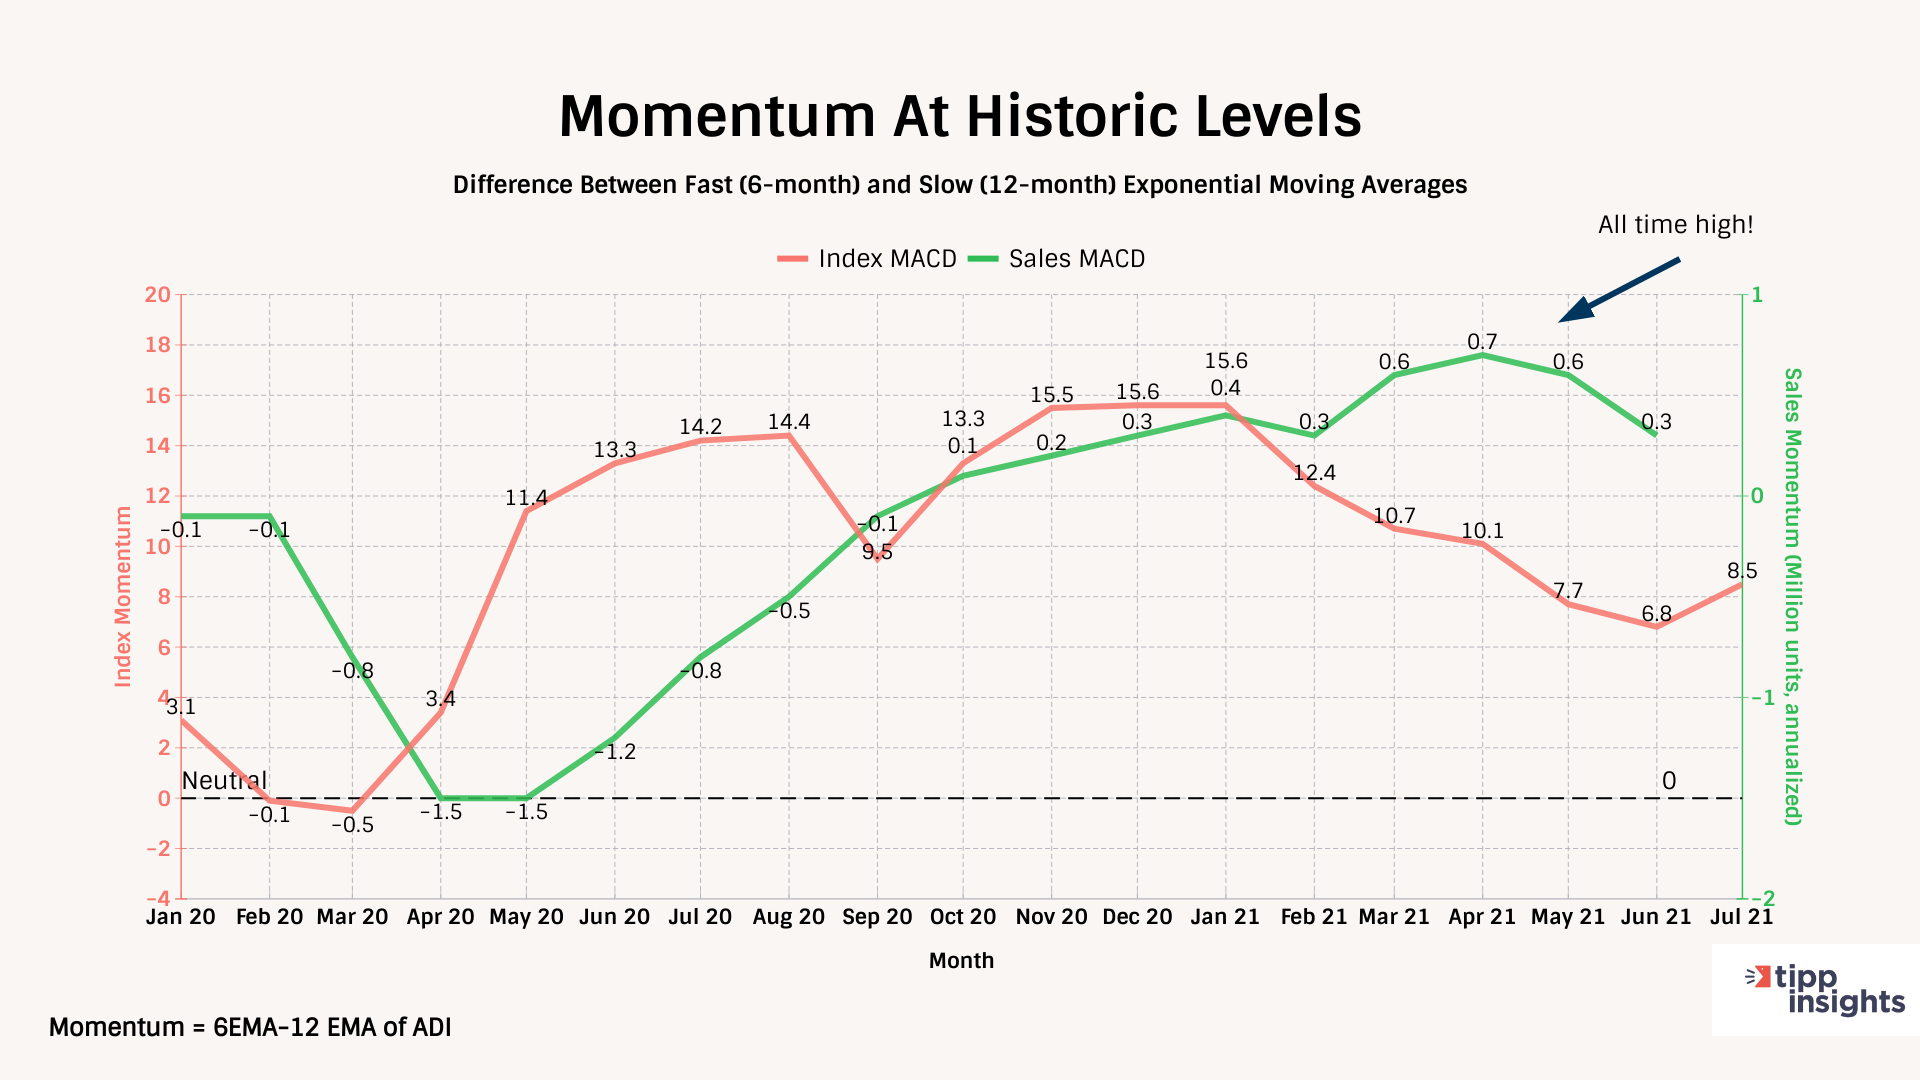 Technometrica Auto demand index Momentum at historic levels, difference between 6 month and 12 exponential moving average